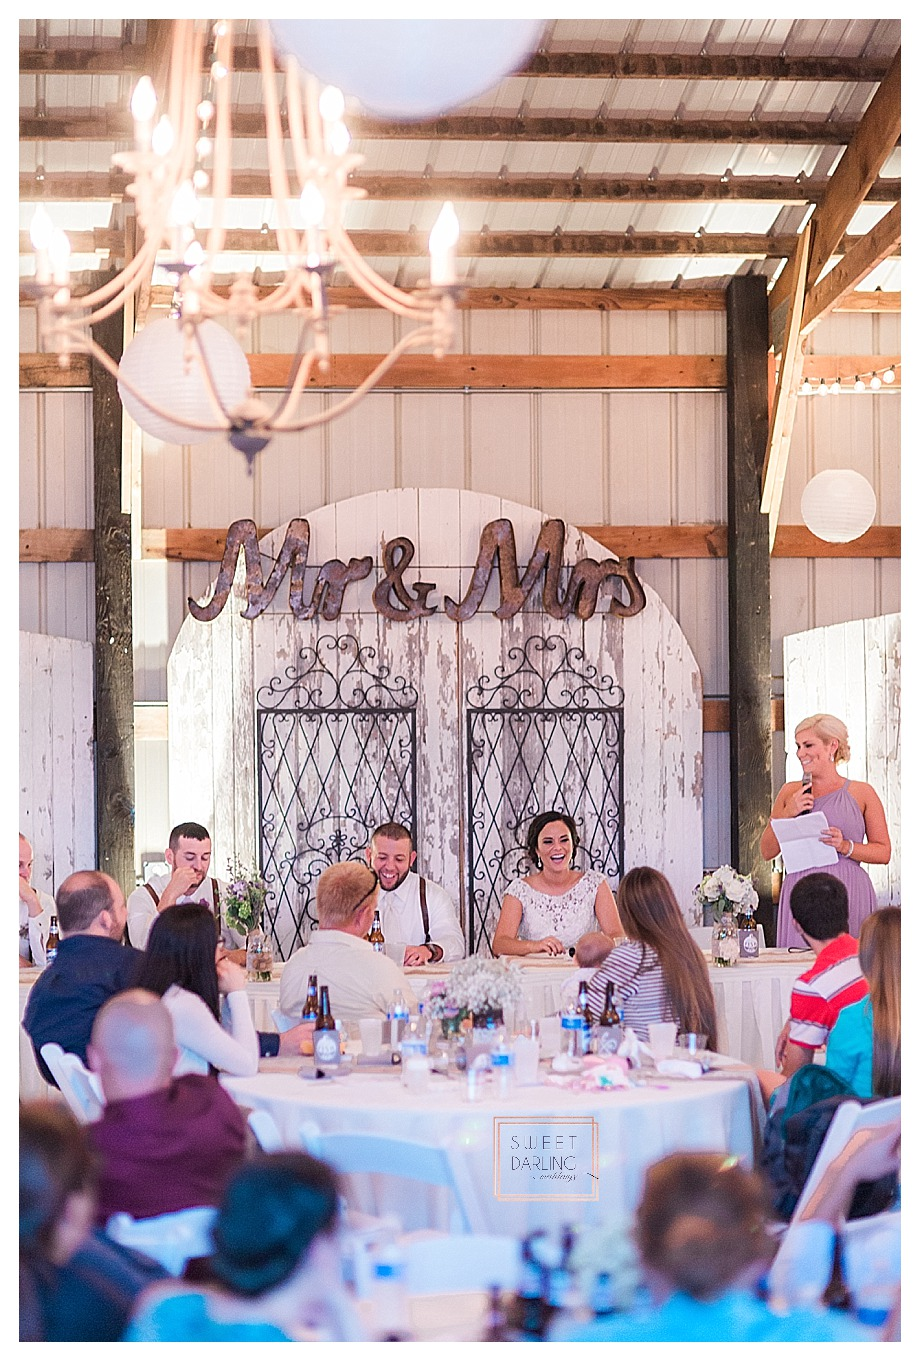 elegant-country-barn-wedding-hudson-farm-urbana-illinois-sweet-darling-weddings-photography_0707